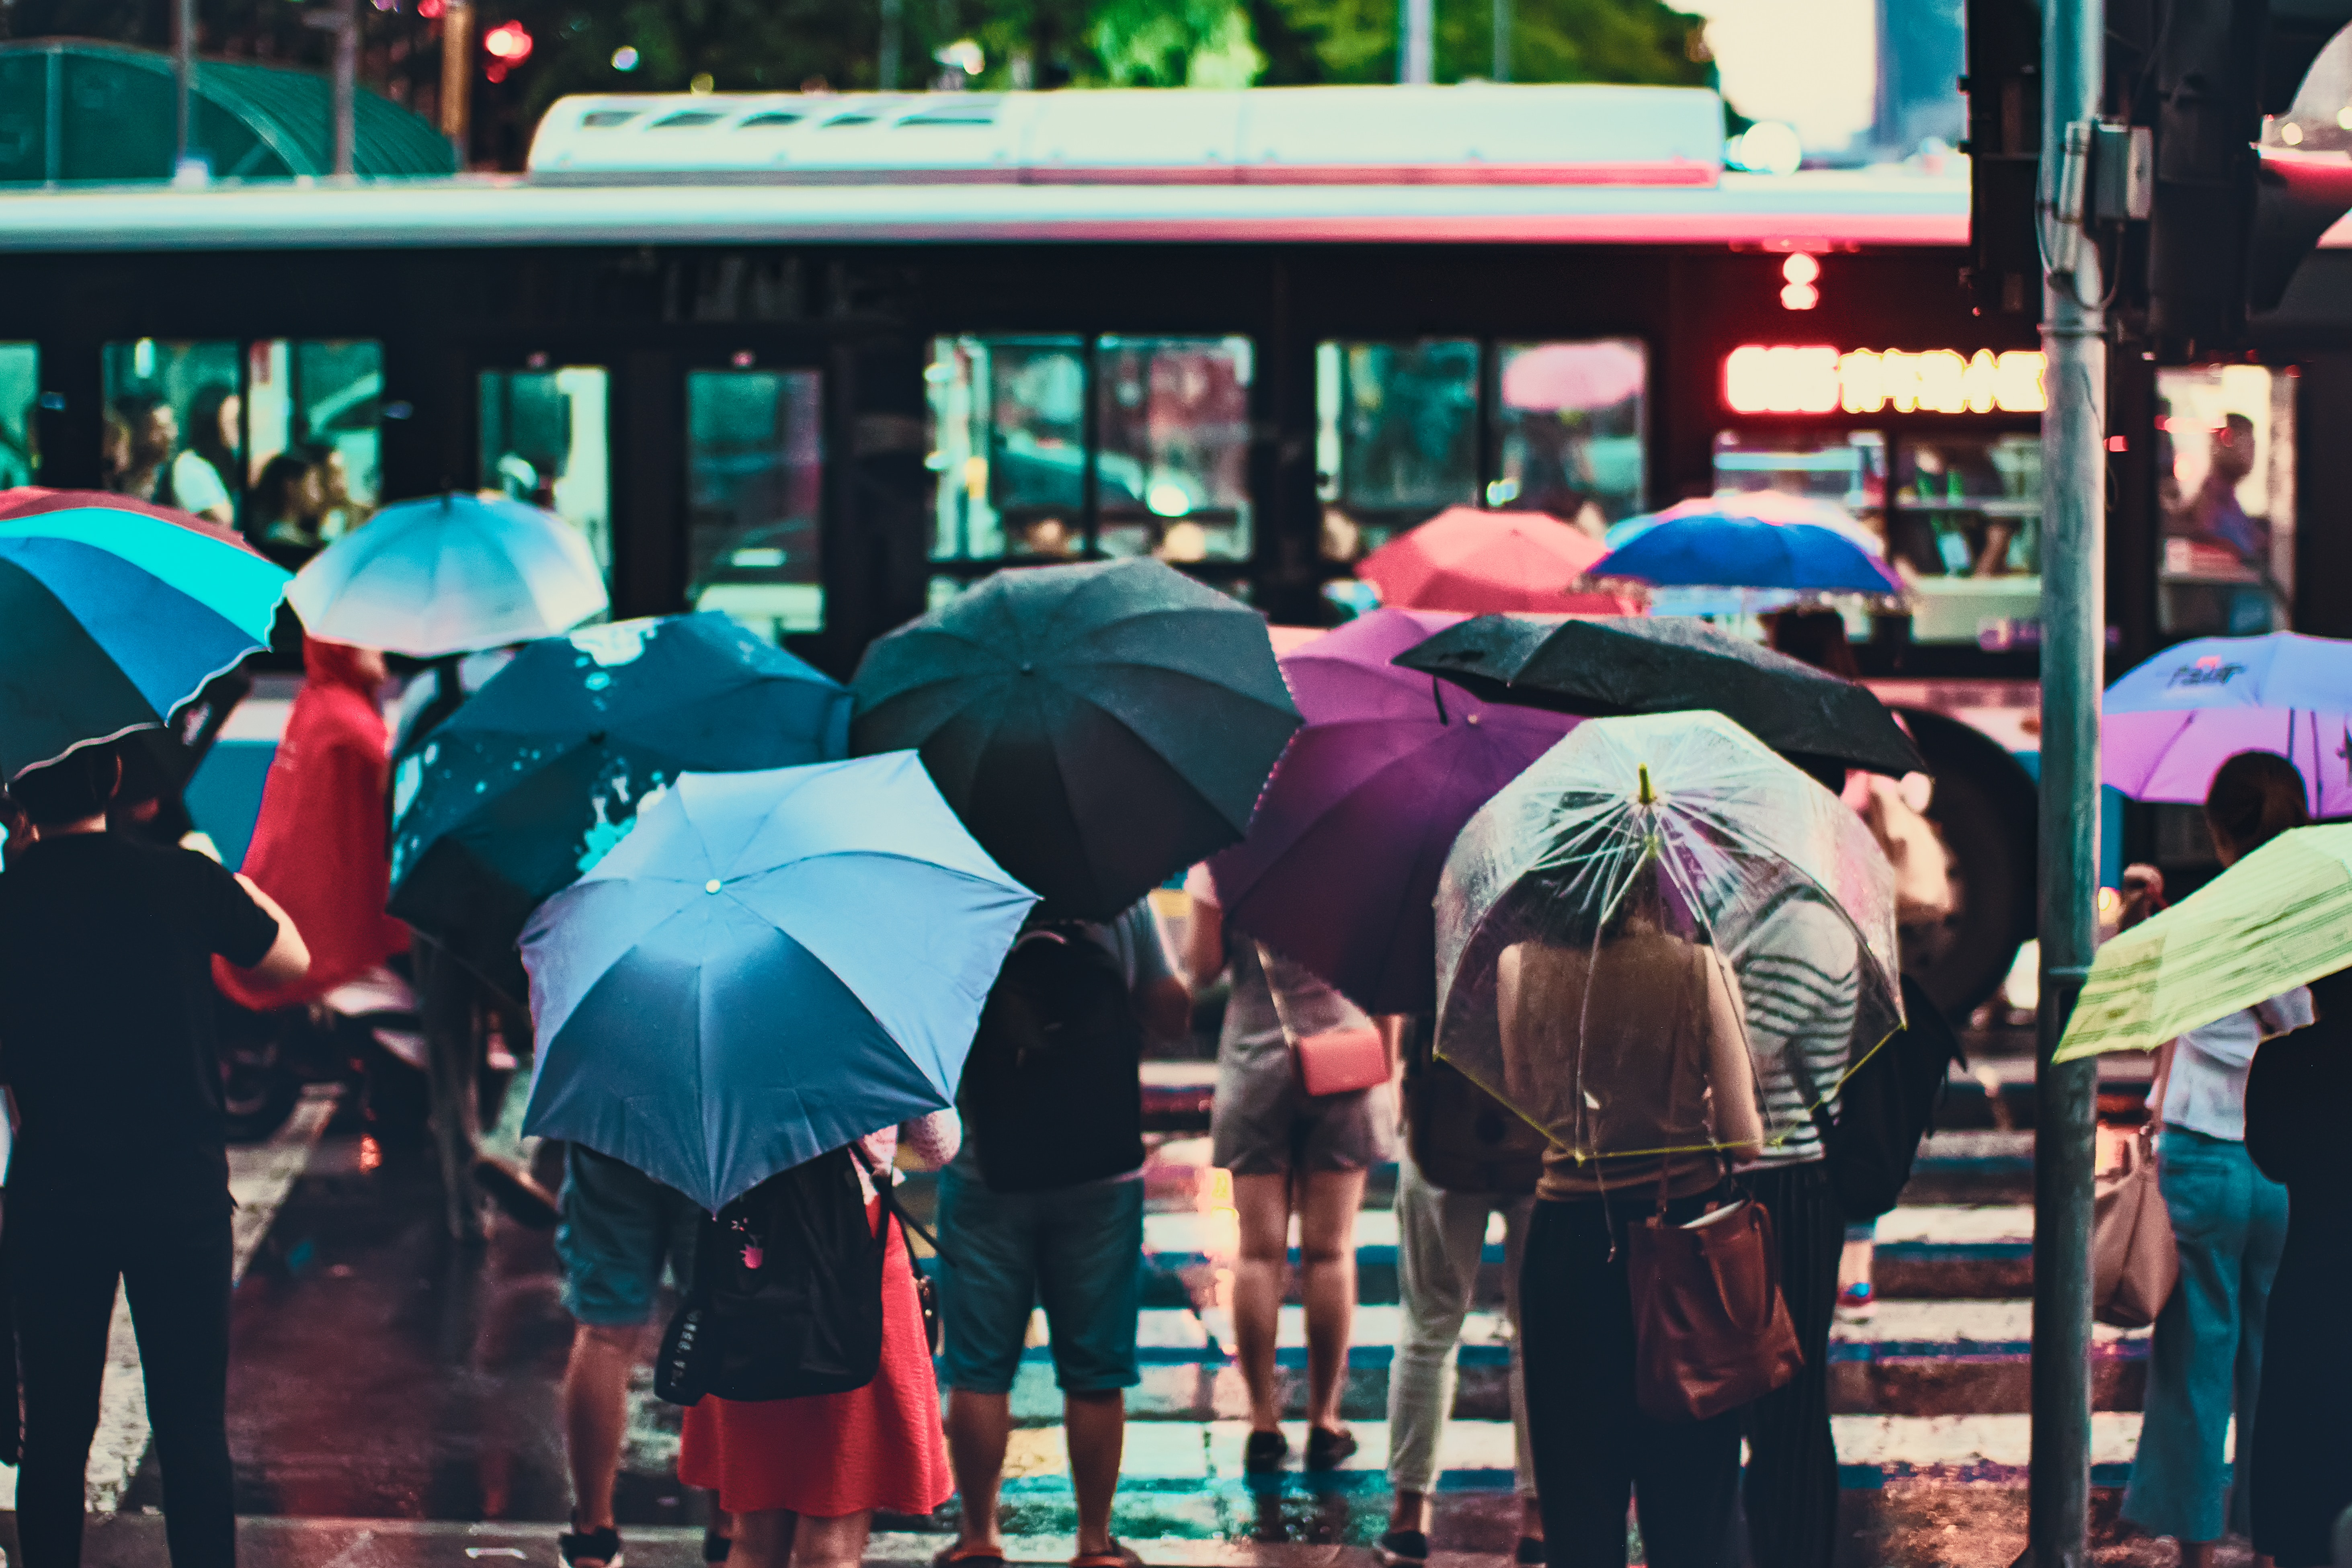 A group of people with umbrellas waiting at a pedestrian crossing.